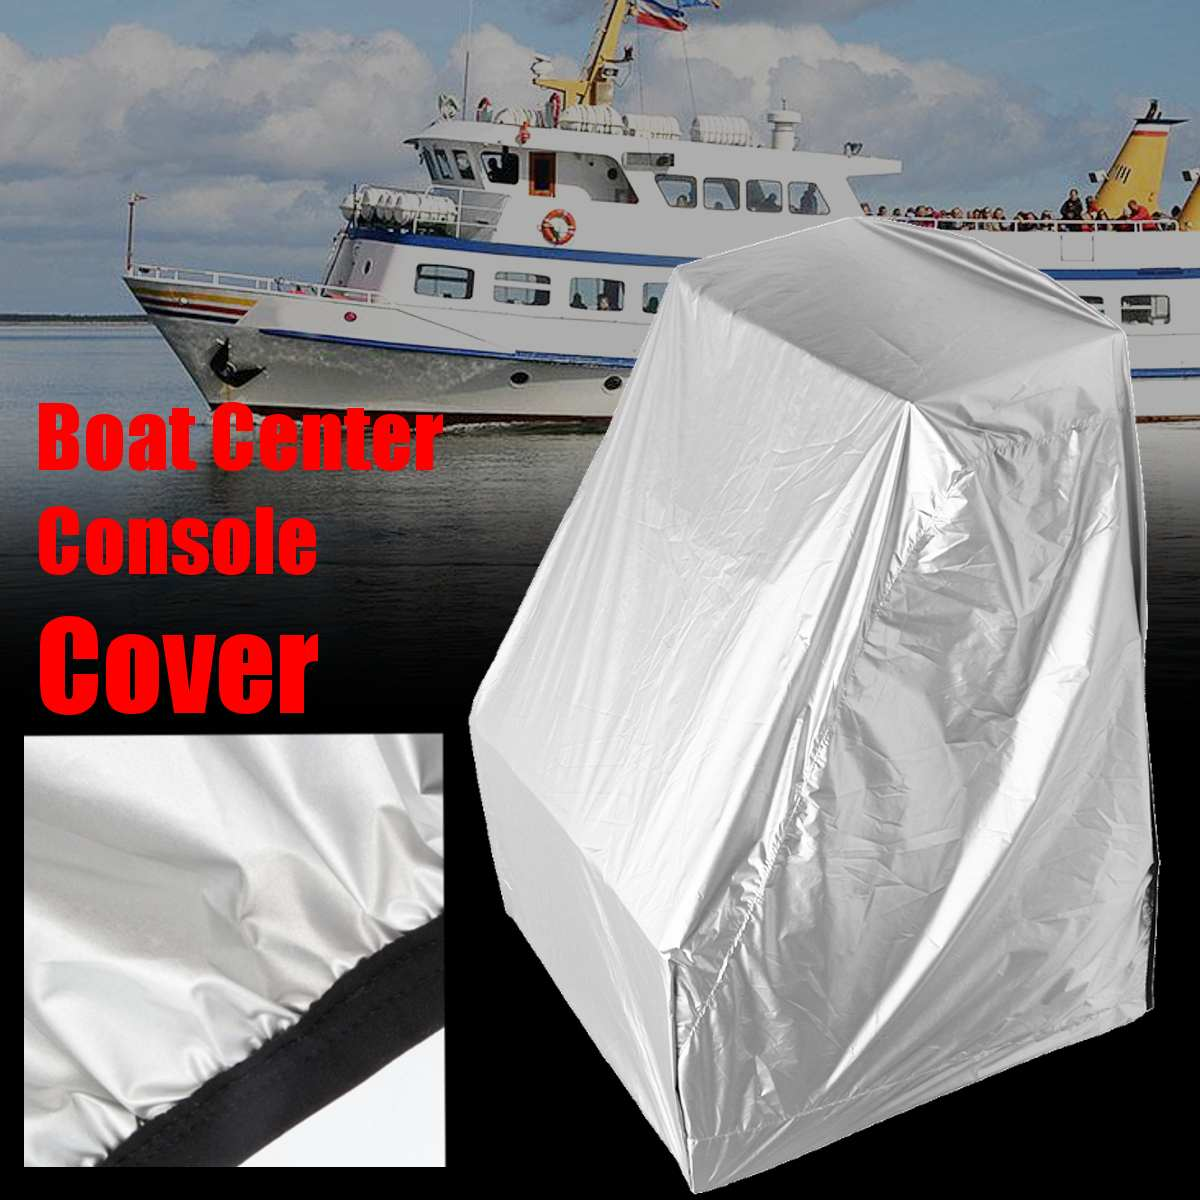 45x46x40 Inch Large Waterproof Dust Boat Cover Yacht Center Console Mat Anti UV Sunlight Keep Dry Clean Folding Polyeste